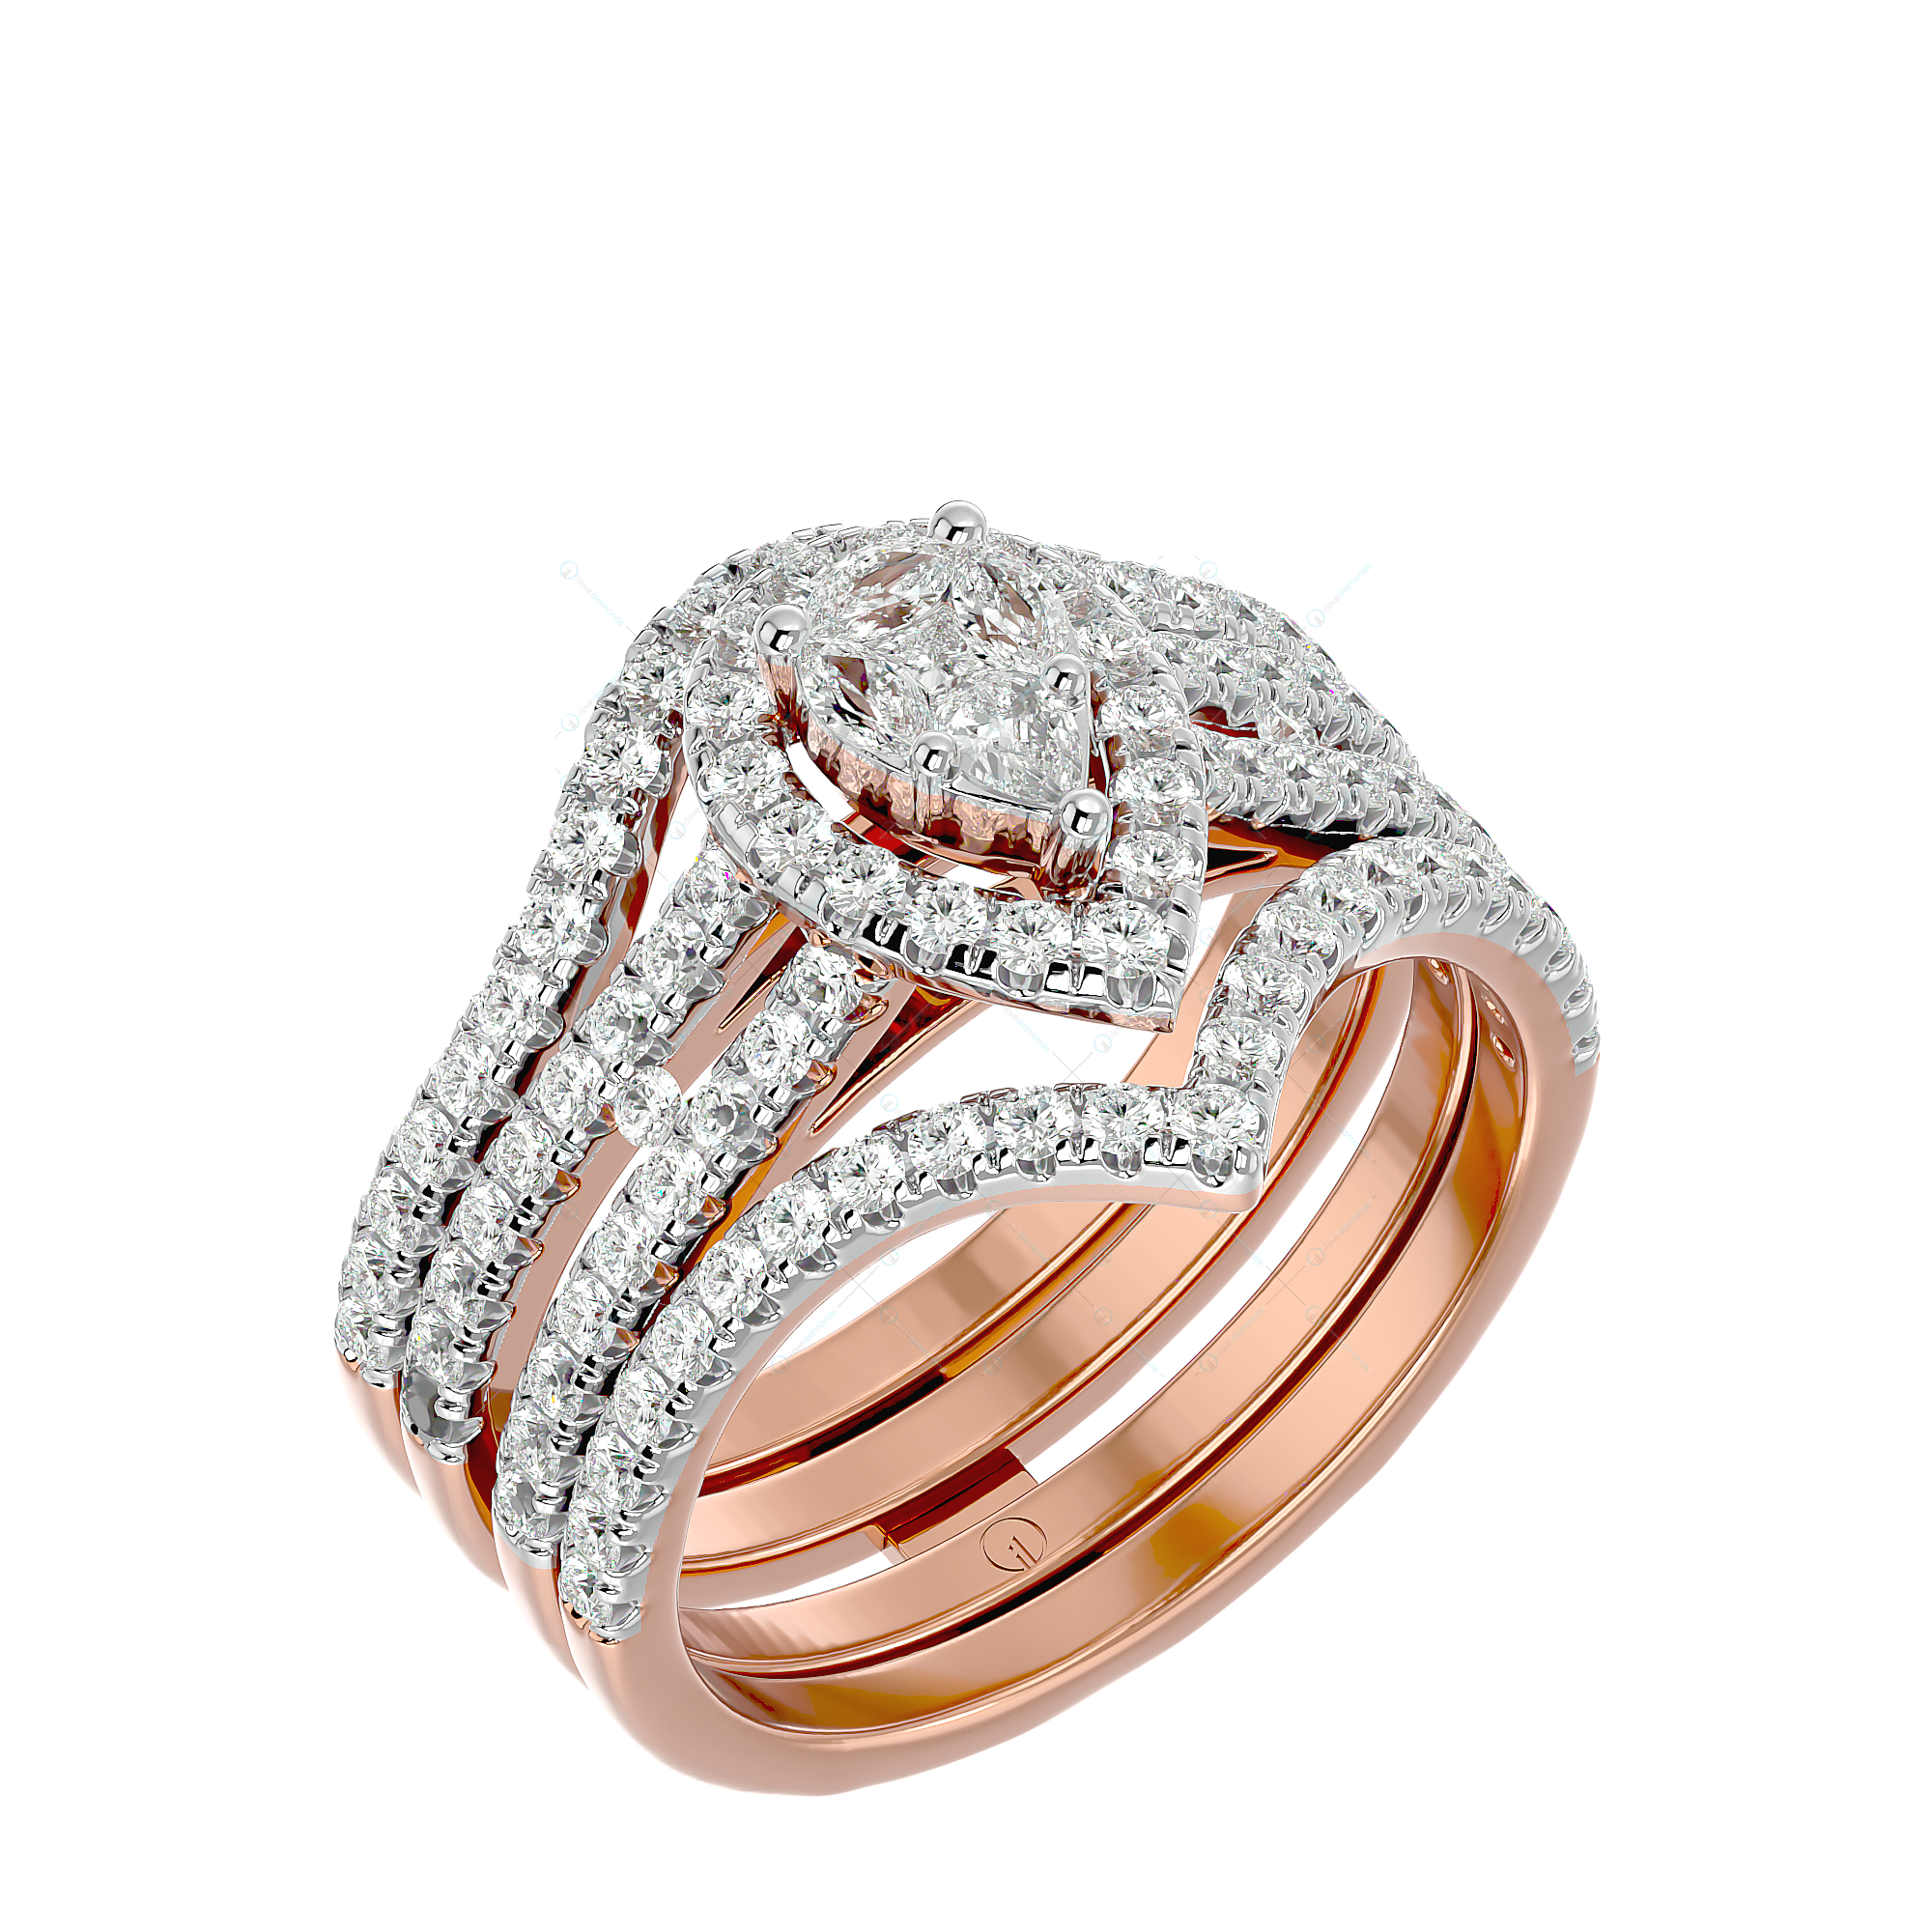 Luxurious Solitaire Illusion Diamond Ring in Pink Gold for Women v1